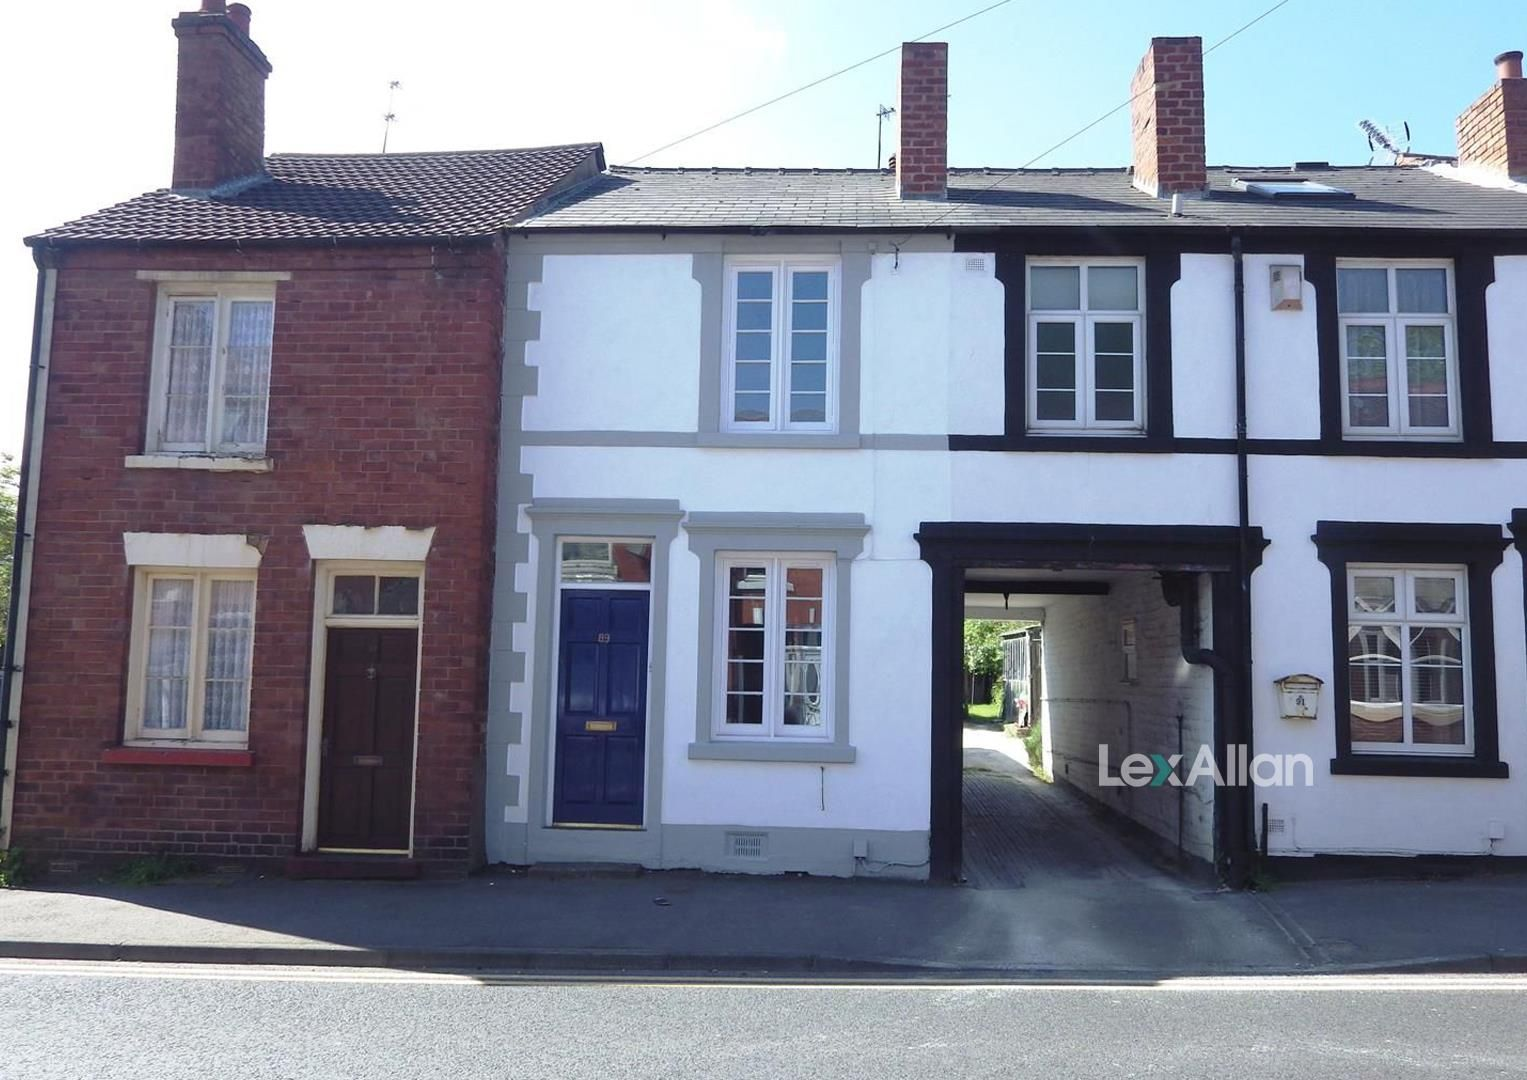 2 bed terraced for sale in Oldswinford  - Property Image 1